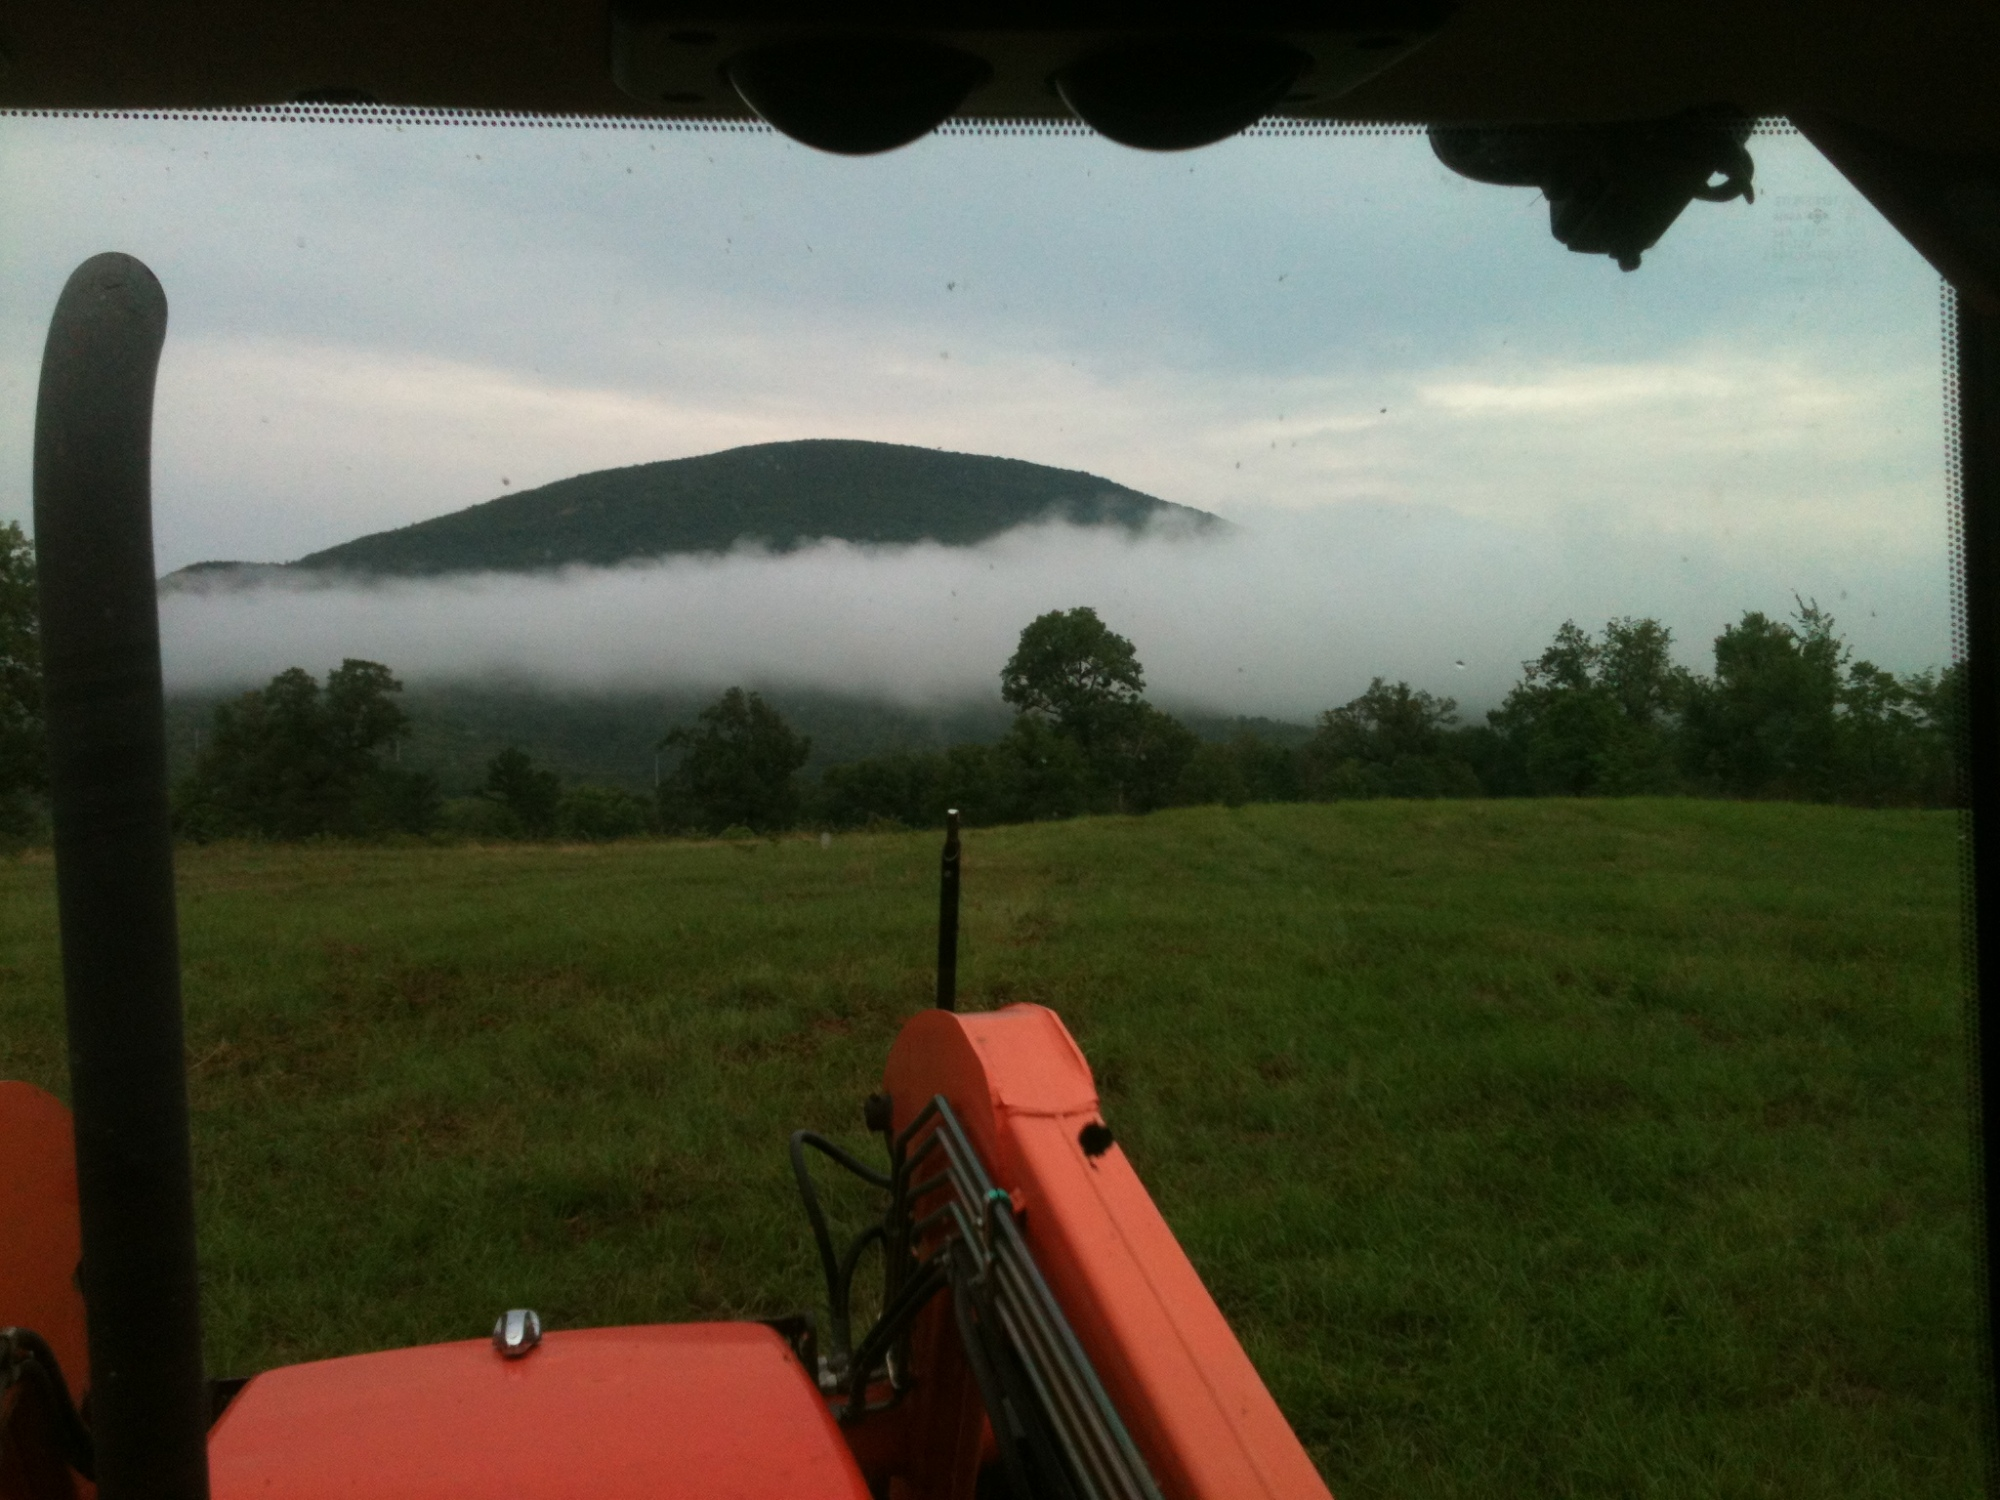 Sugarloaf Mtn near Monroe after a rain on 7/14/12